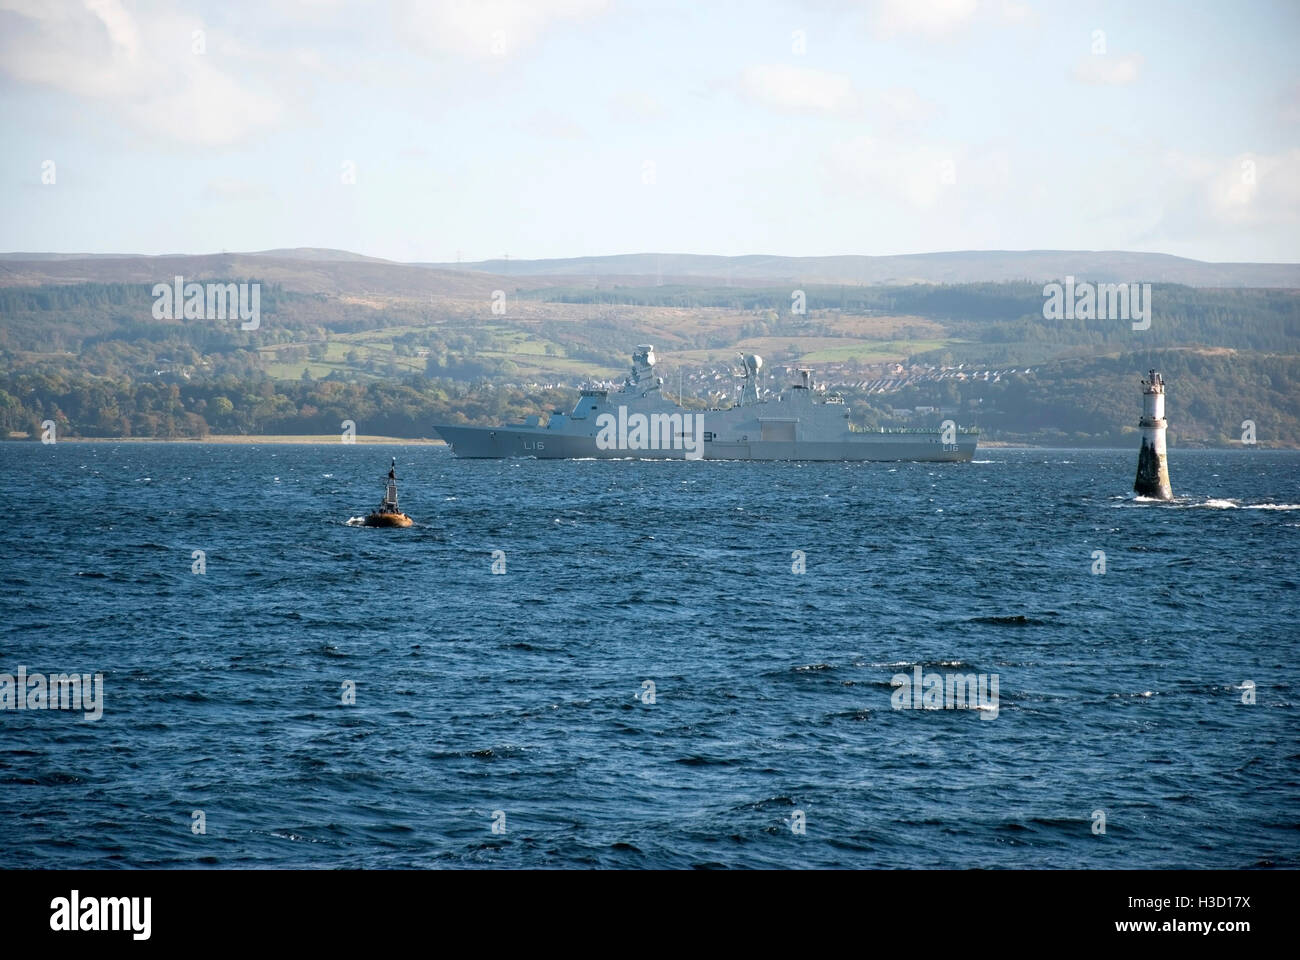 H.D.M.S. Absalom NATO L16 Warship River Clyde Scotland - Stock Image